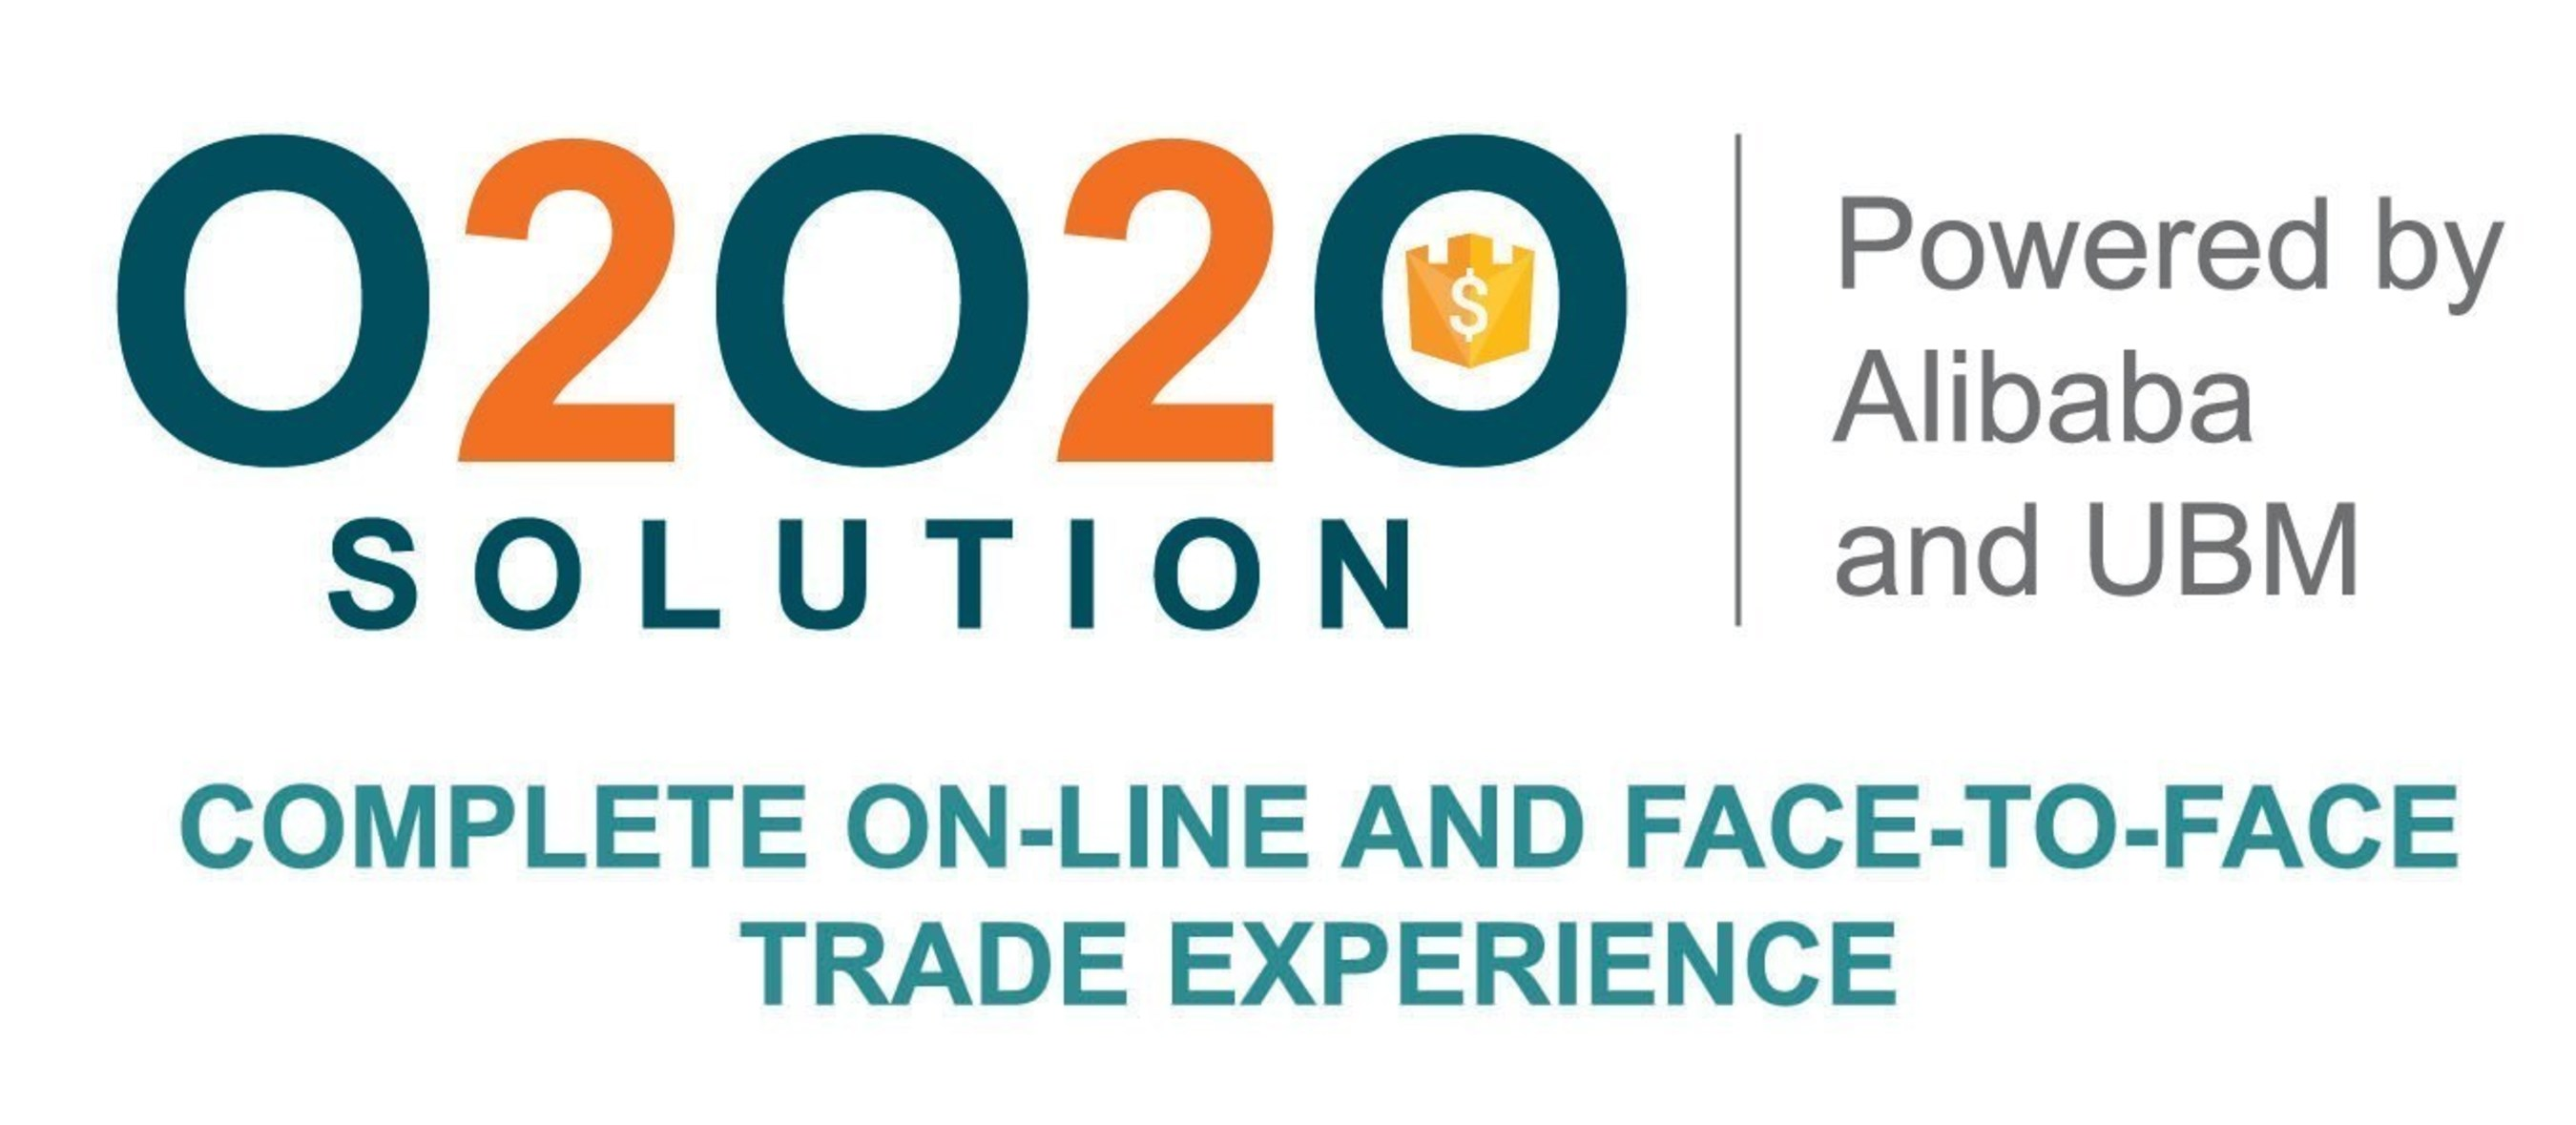 SIGN & LED CHINA Show Opens with the Launch of Alibaba B2B and UBM's 'O2O2O Solution'